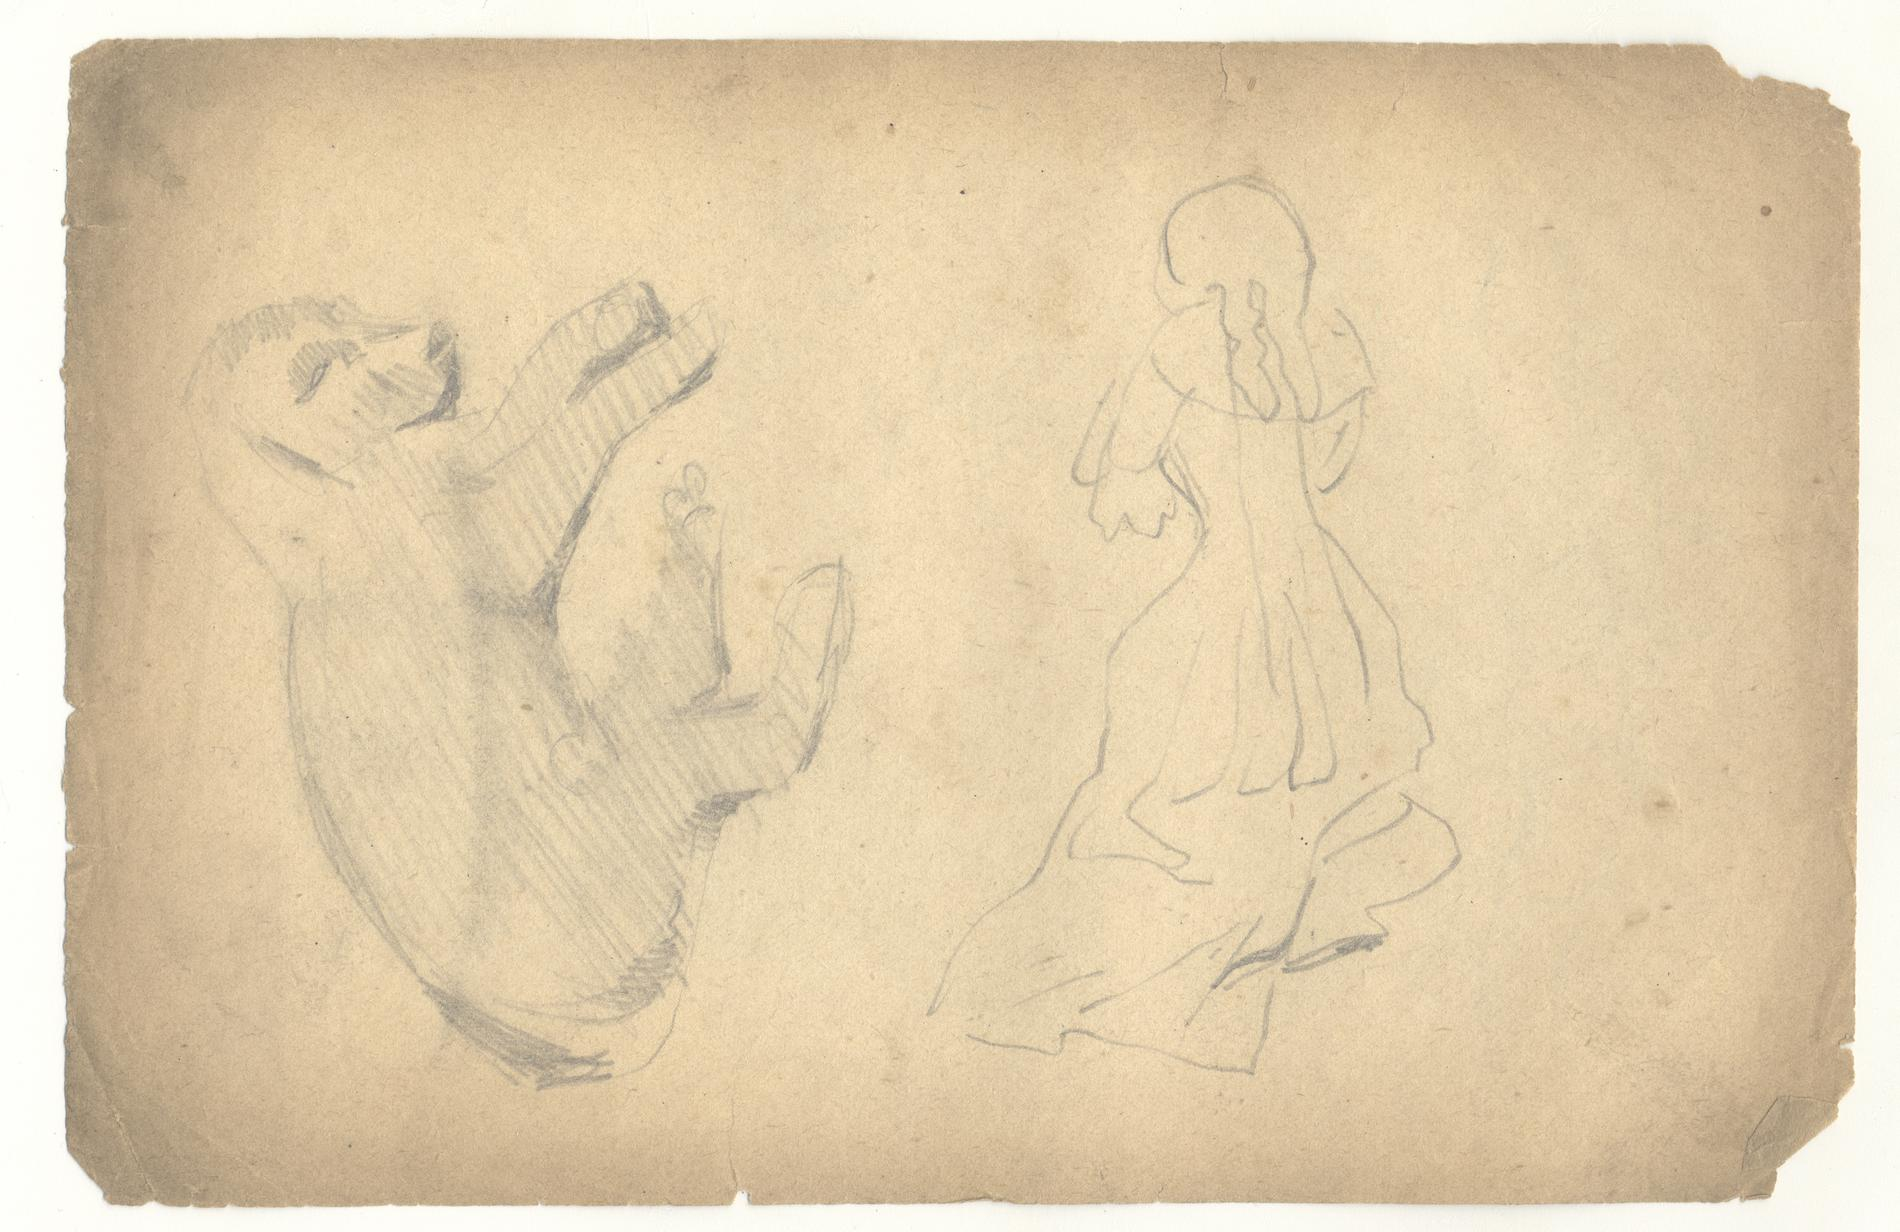 Study of a Puppy; Study of a Woman: Verso, Study of a Man in 18th Century Costume (Drawing)